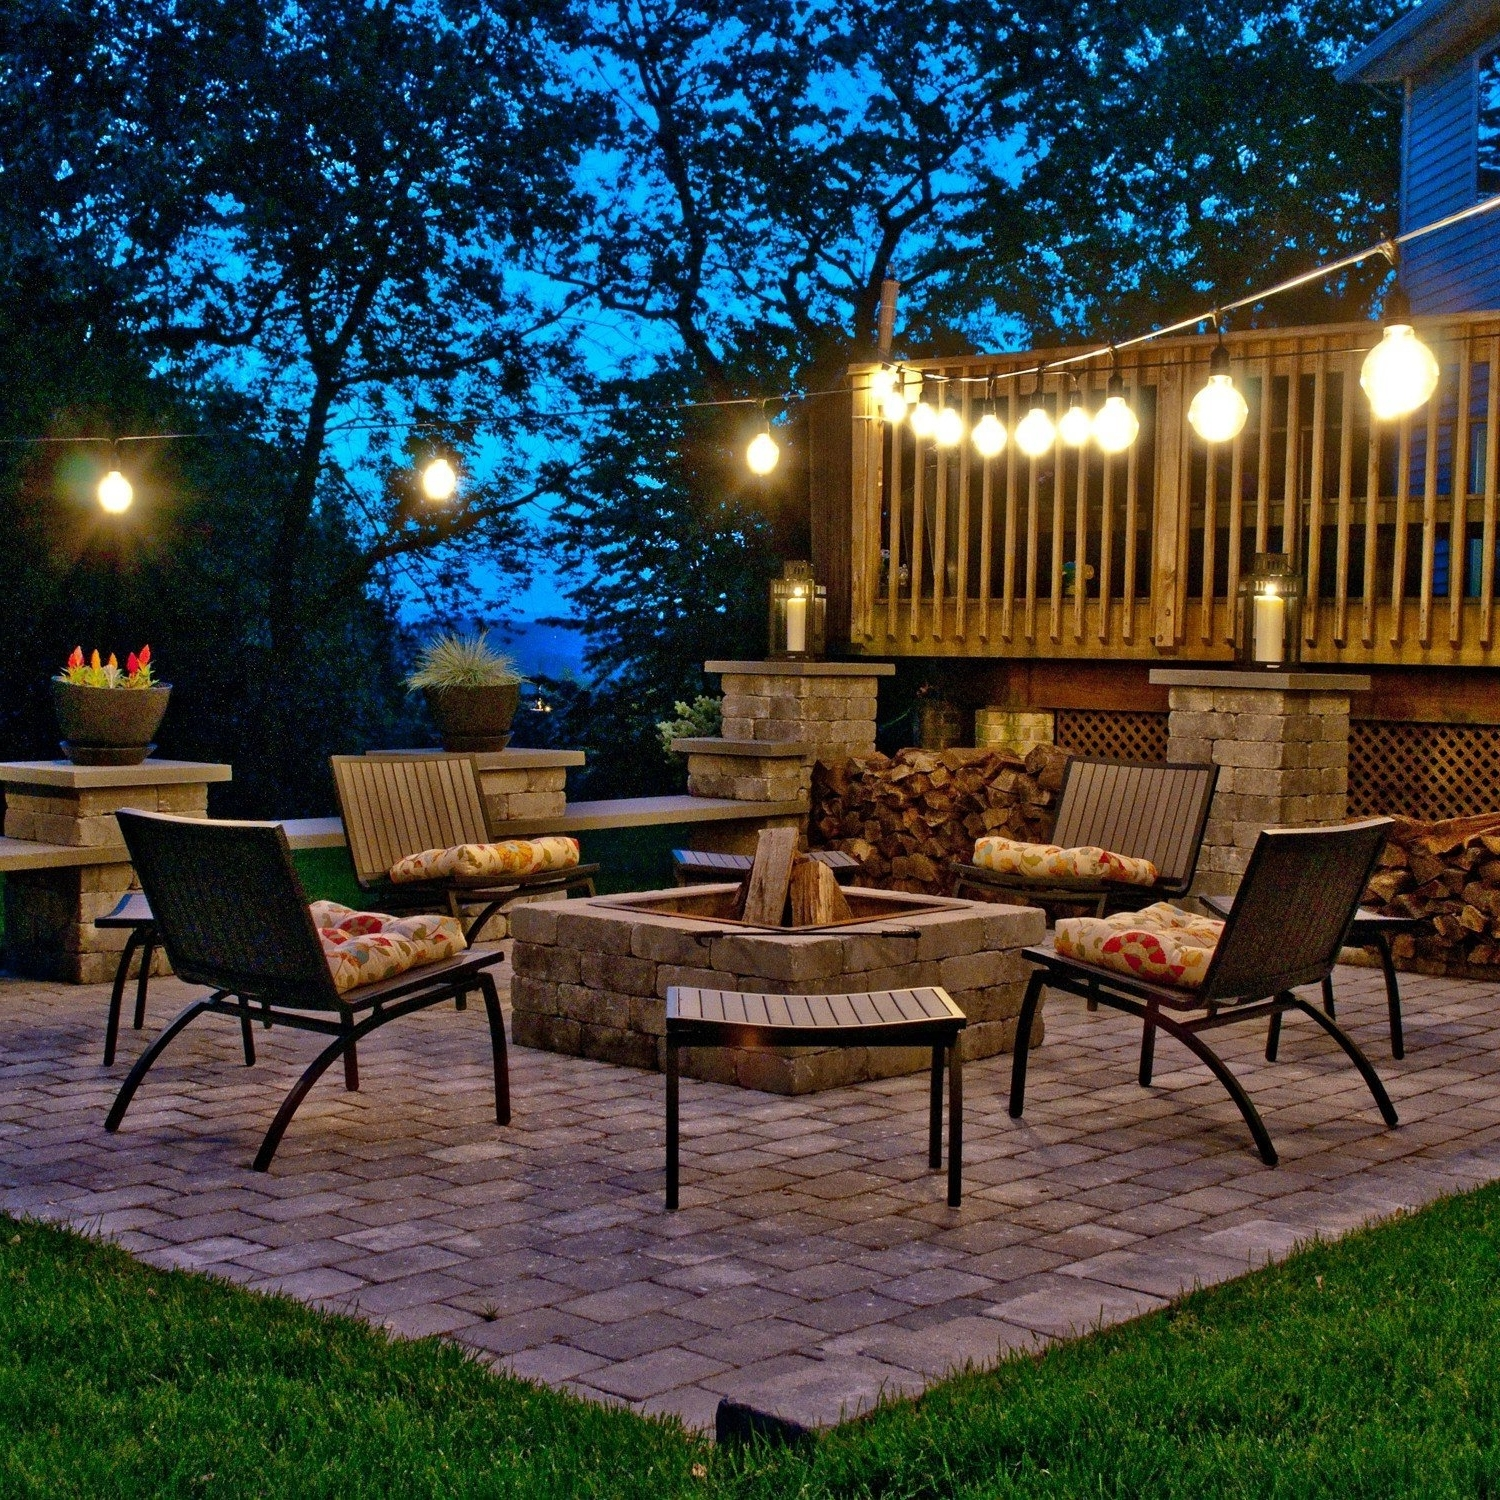 Ideas To Decorate Patio String Lights — Awesome House Lighting With Regard To Famous Outdoor Lawn Lanterns (View 5 of 20)